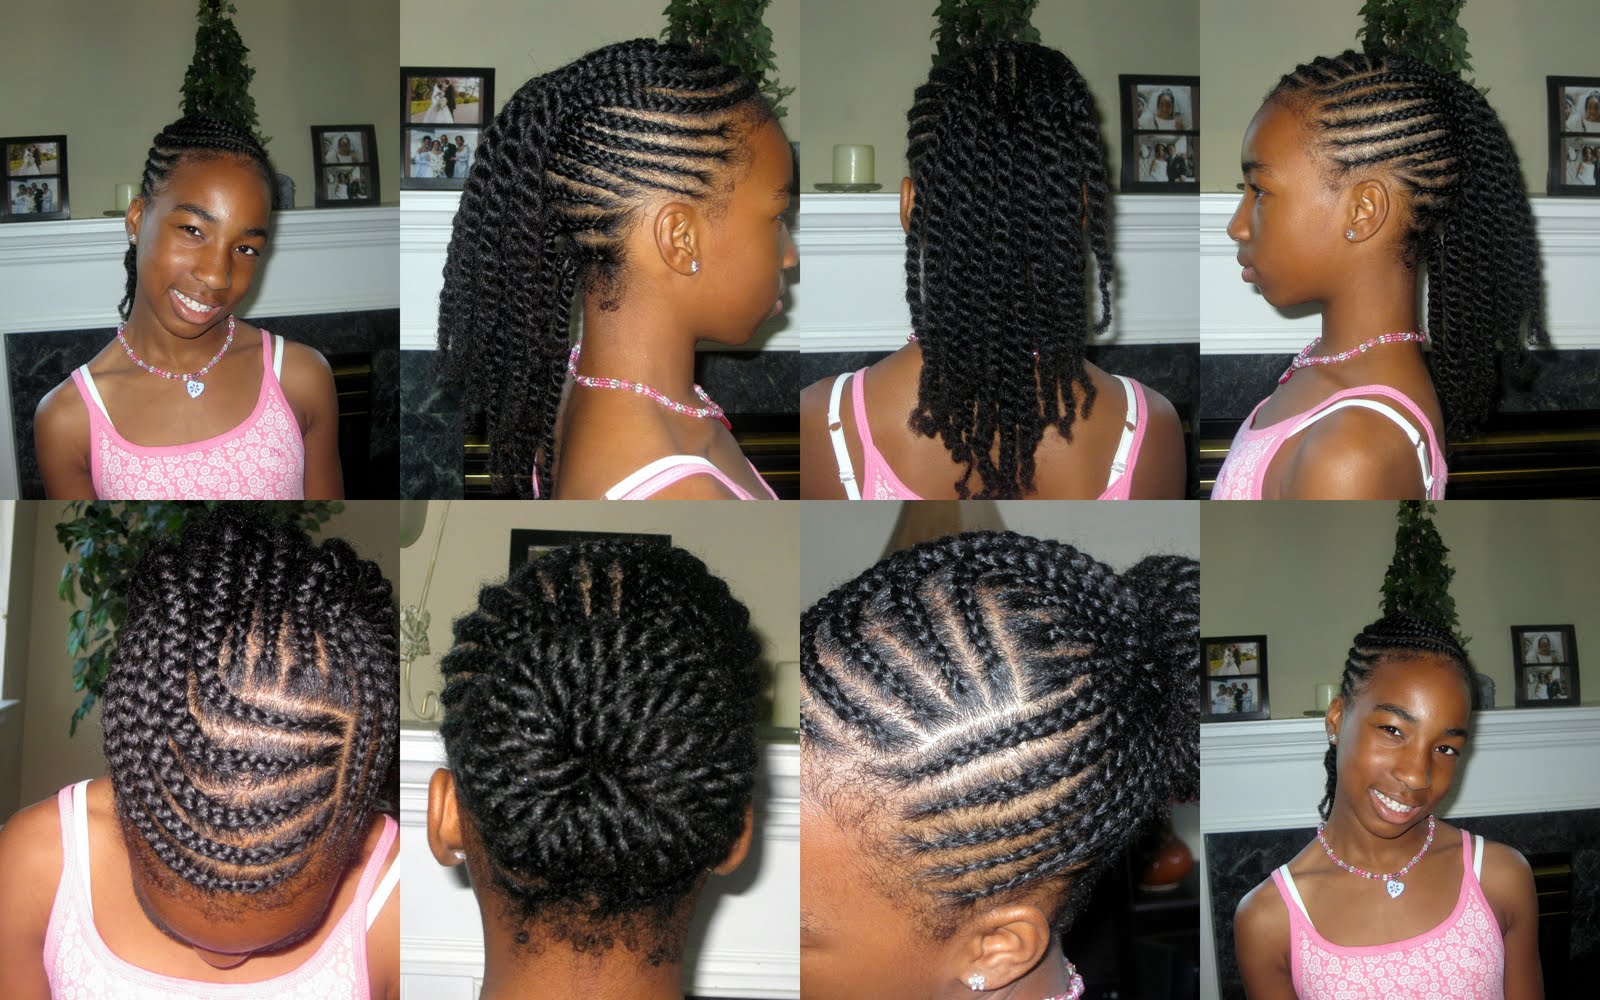 Easy Braided Hairstyles For Little Black Girls | 1080p HD Wallpaper